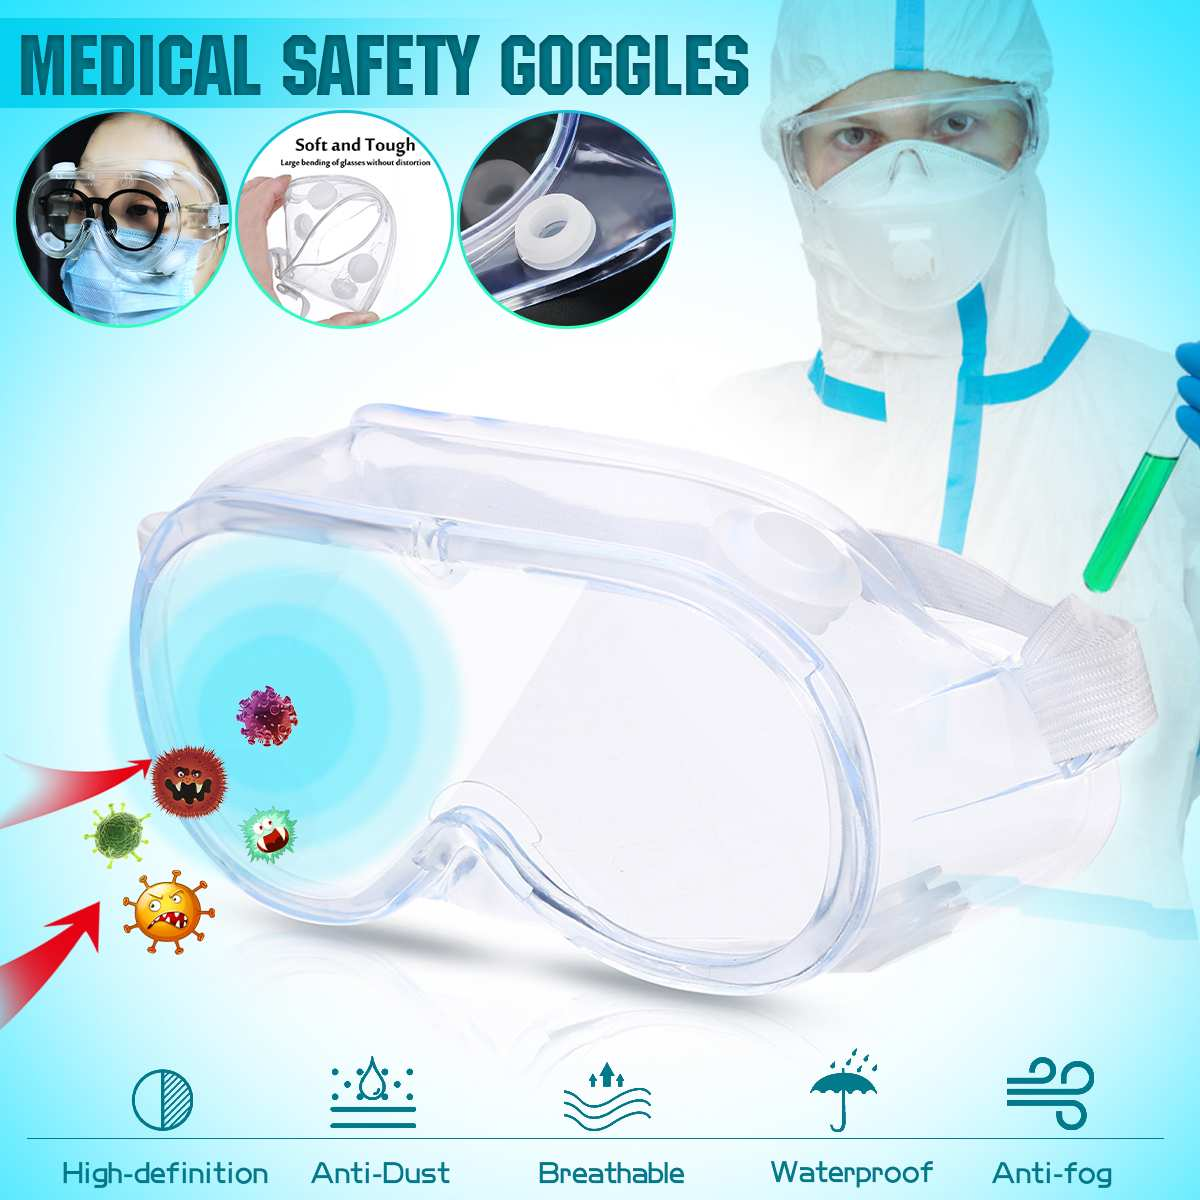 Safety Goggles Transparent Lens Goggles Eye Protective Glasses Anti-Fog Antisand Dust Resist UV Light Fully Enclosed